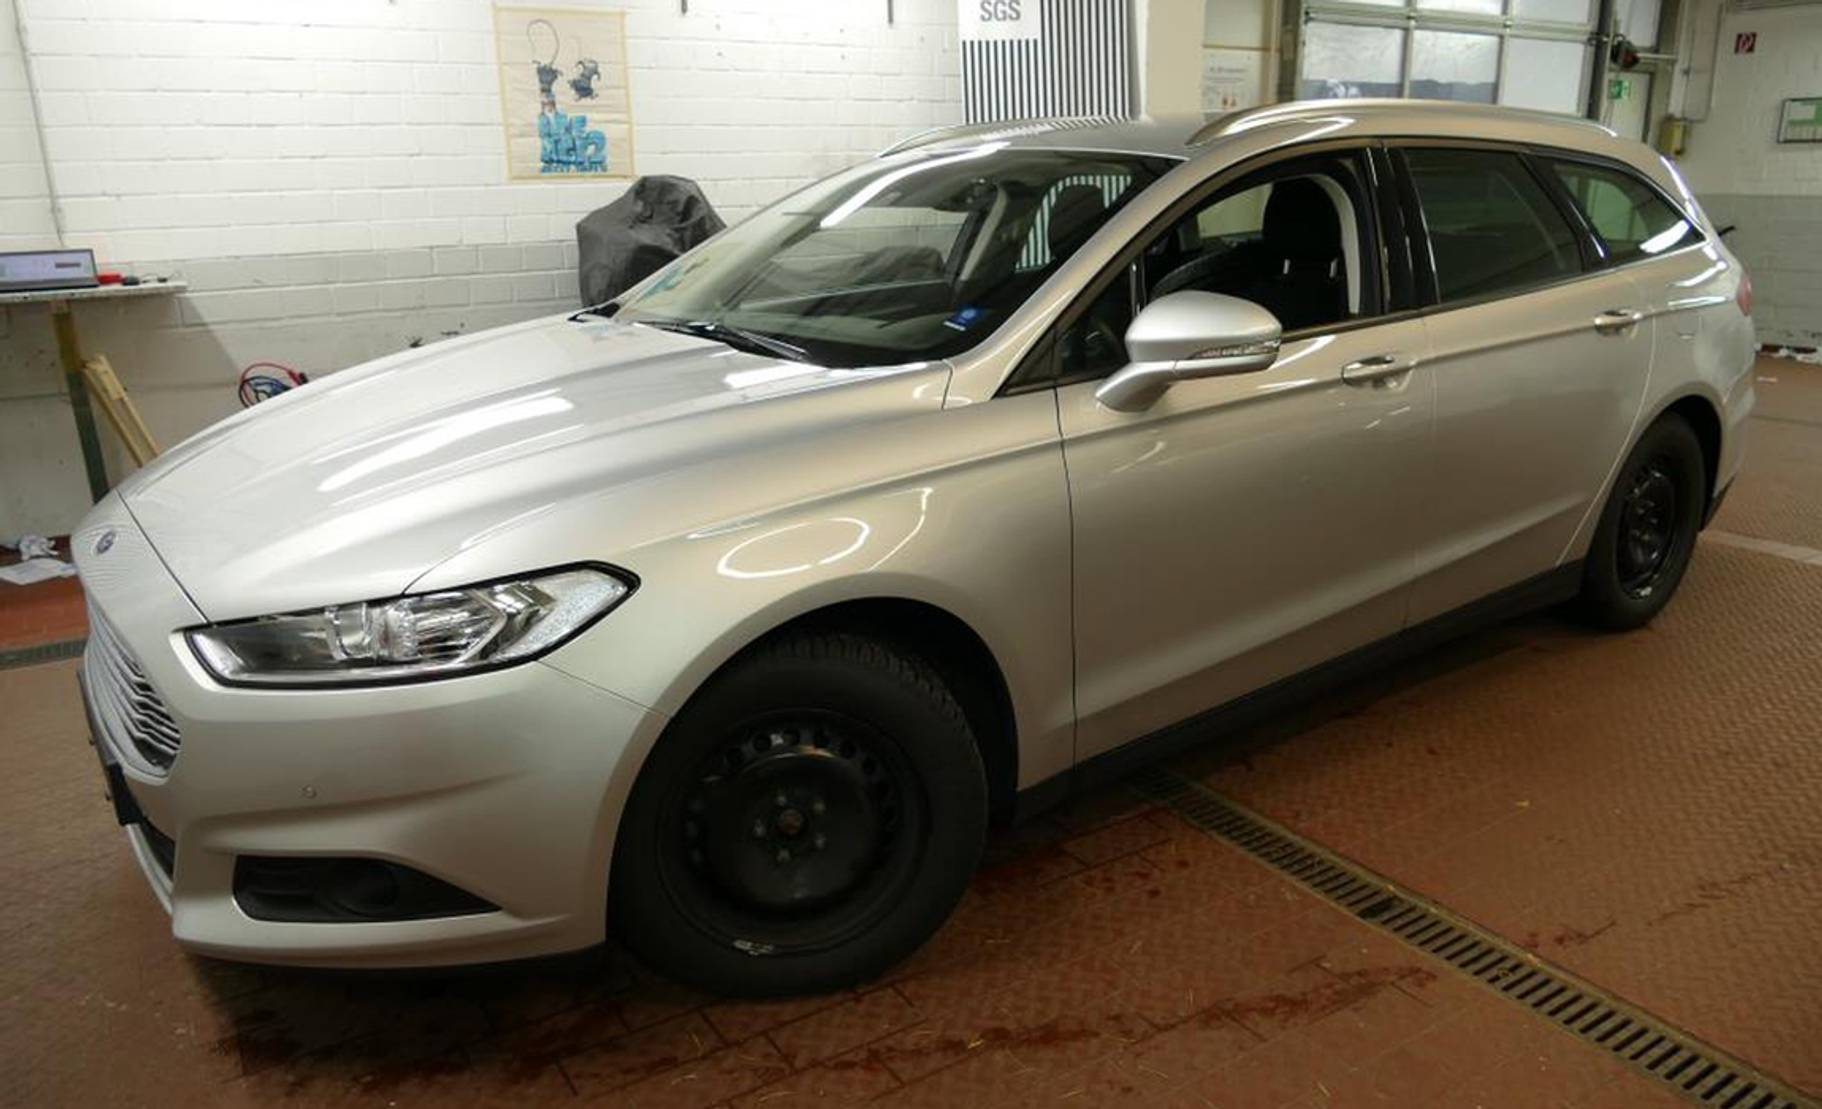 Ford Mondeo Turnier 2.0TDCi Business Edition STANDHZG detail1